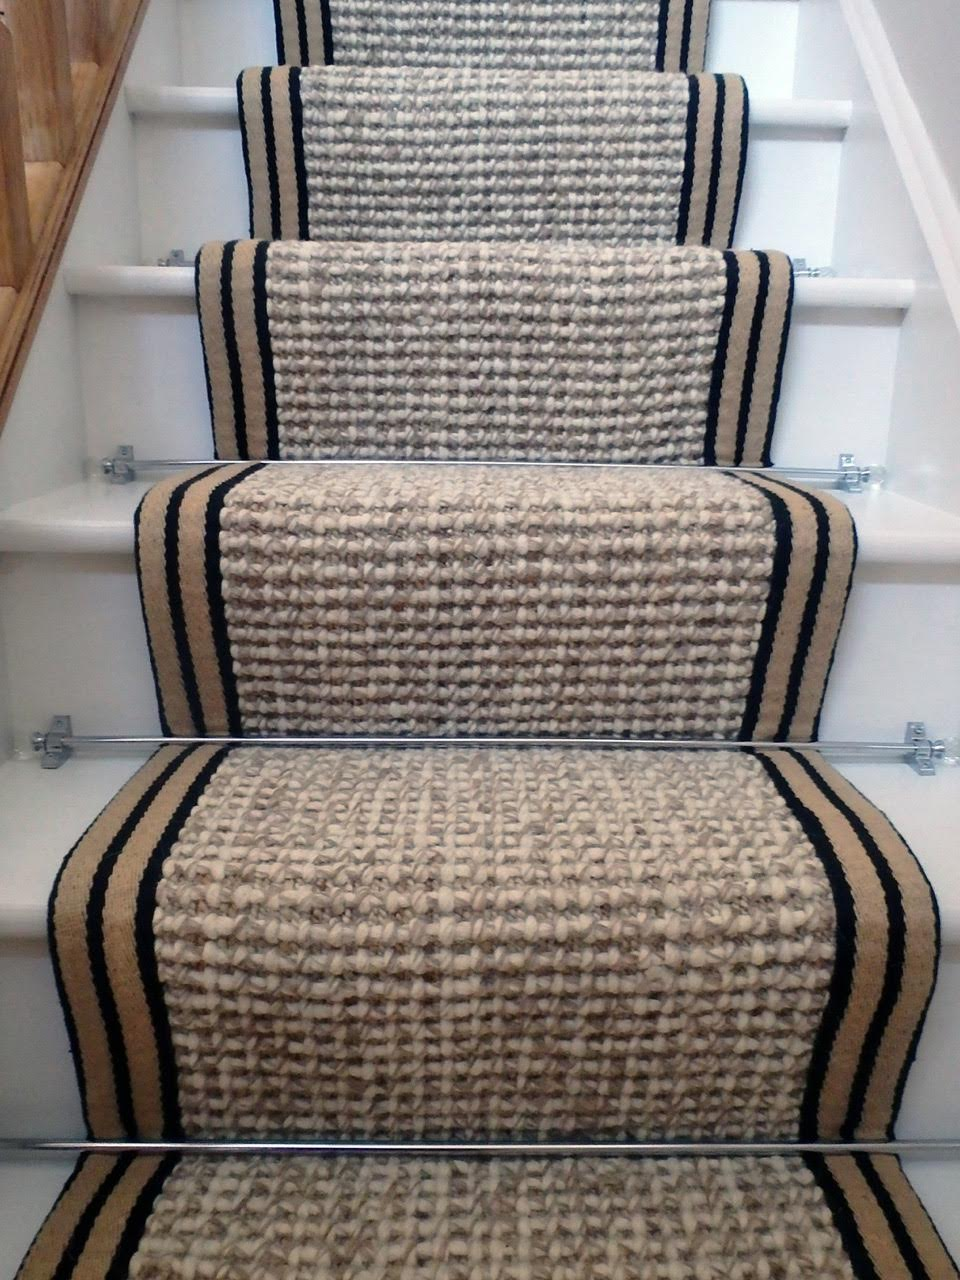 stair carpets stair runner carpet wool hemp. wool hemp black border wool hemp striped FKJXGFX